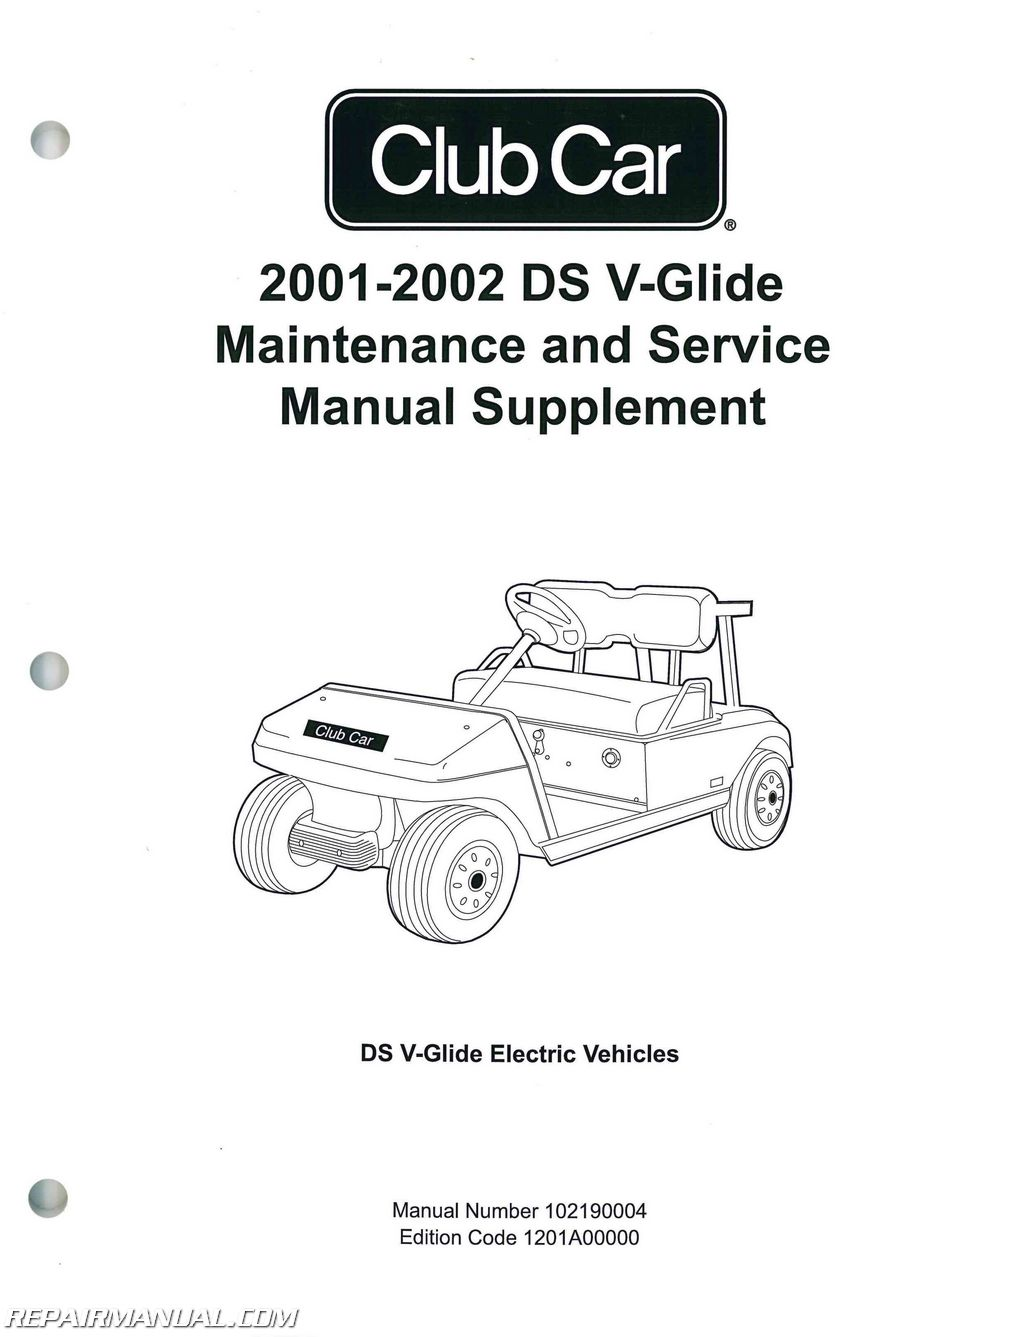 hight resolution of 2001 2002 club car ds v glide golf car maintenance and service club car battery diagram club car v glide diagram